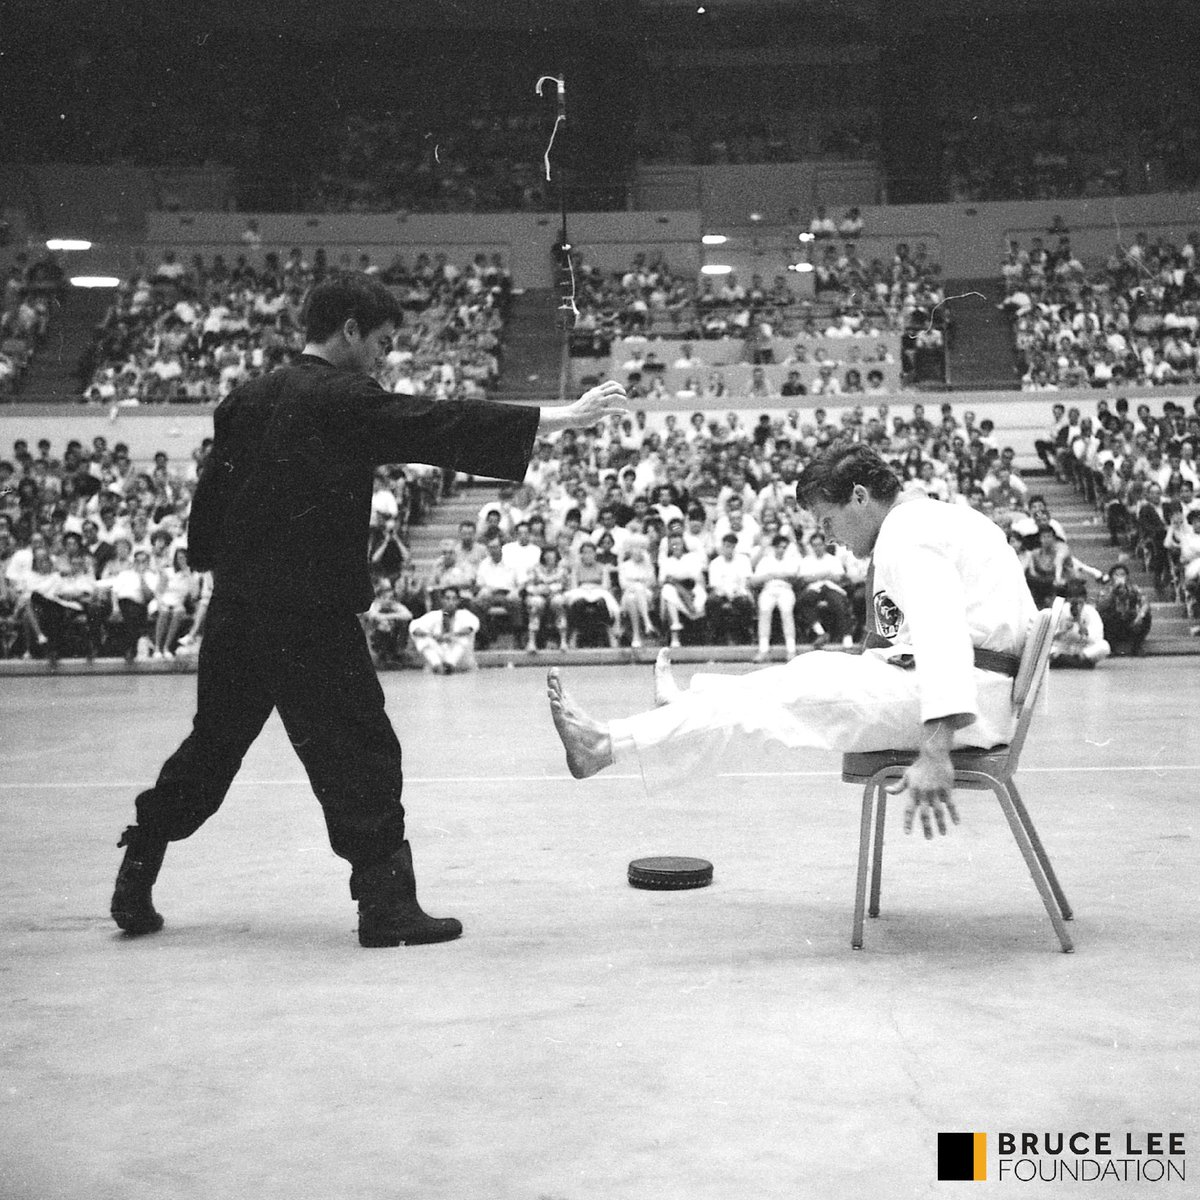 Bruce Lee One Inch Punch: How To Train And Use It